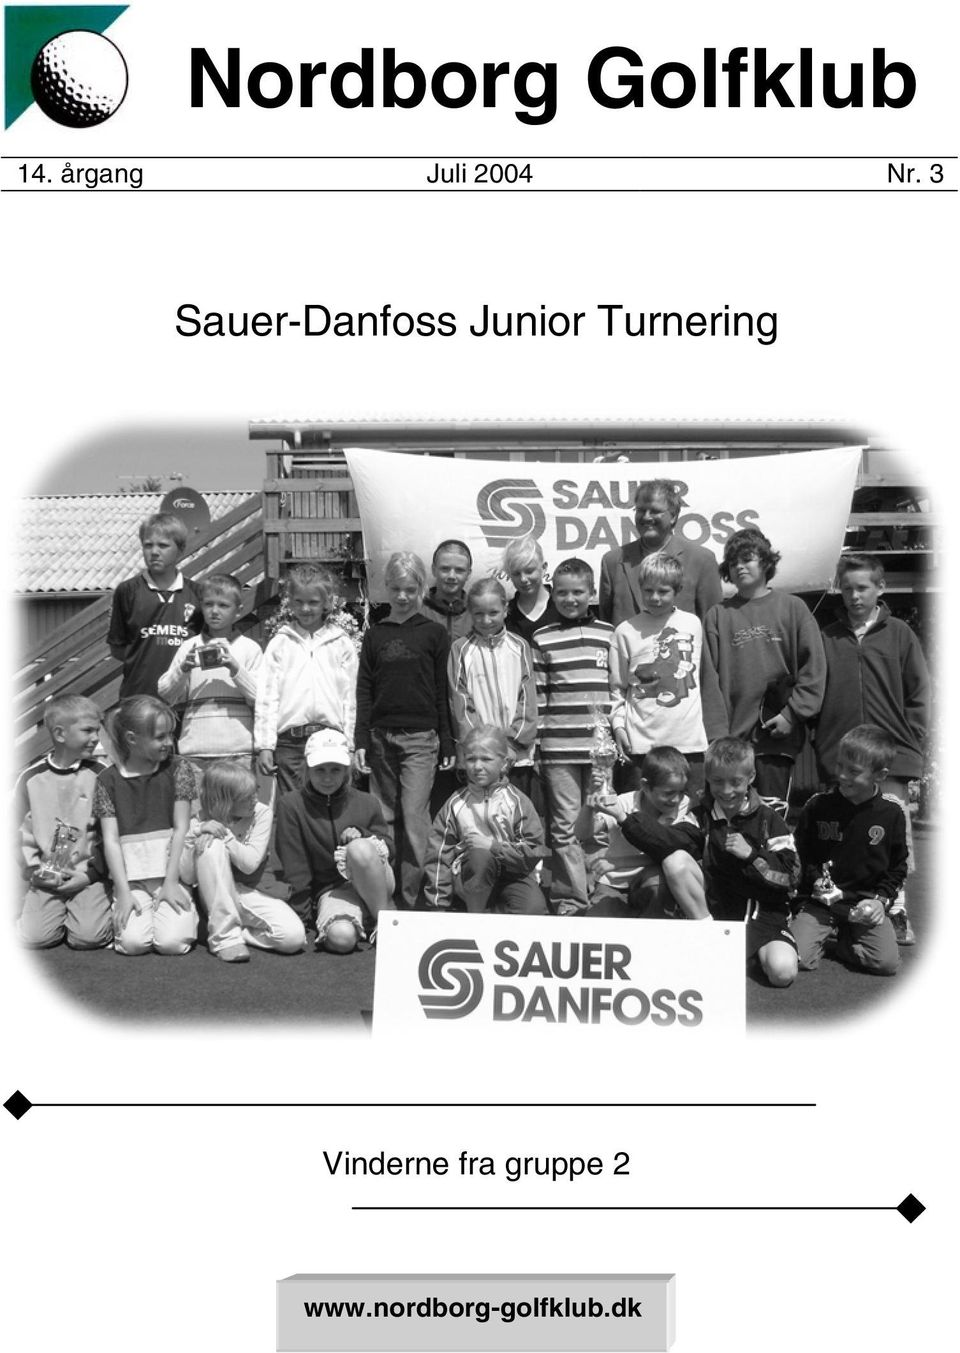 3 Sauer-Danfoss Junior